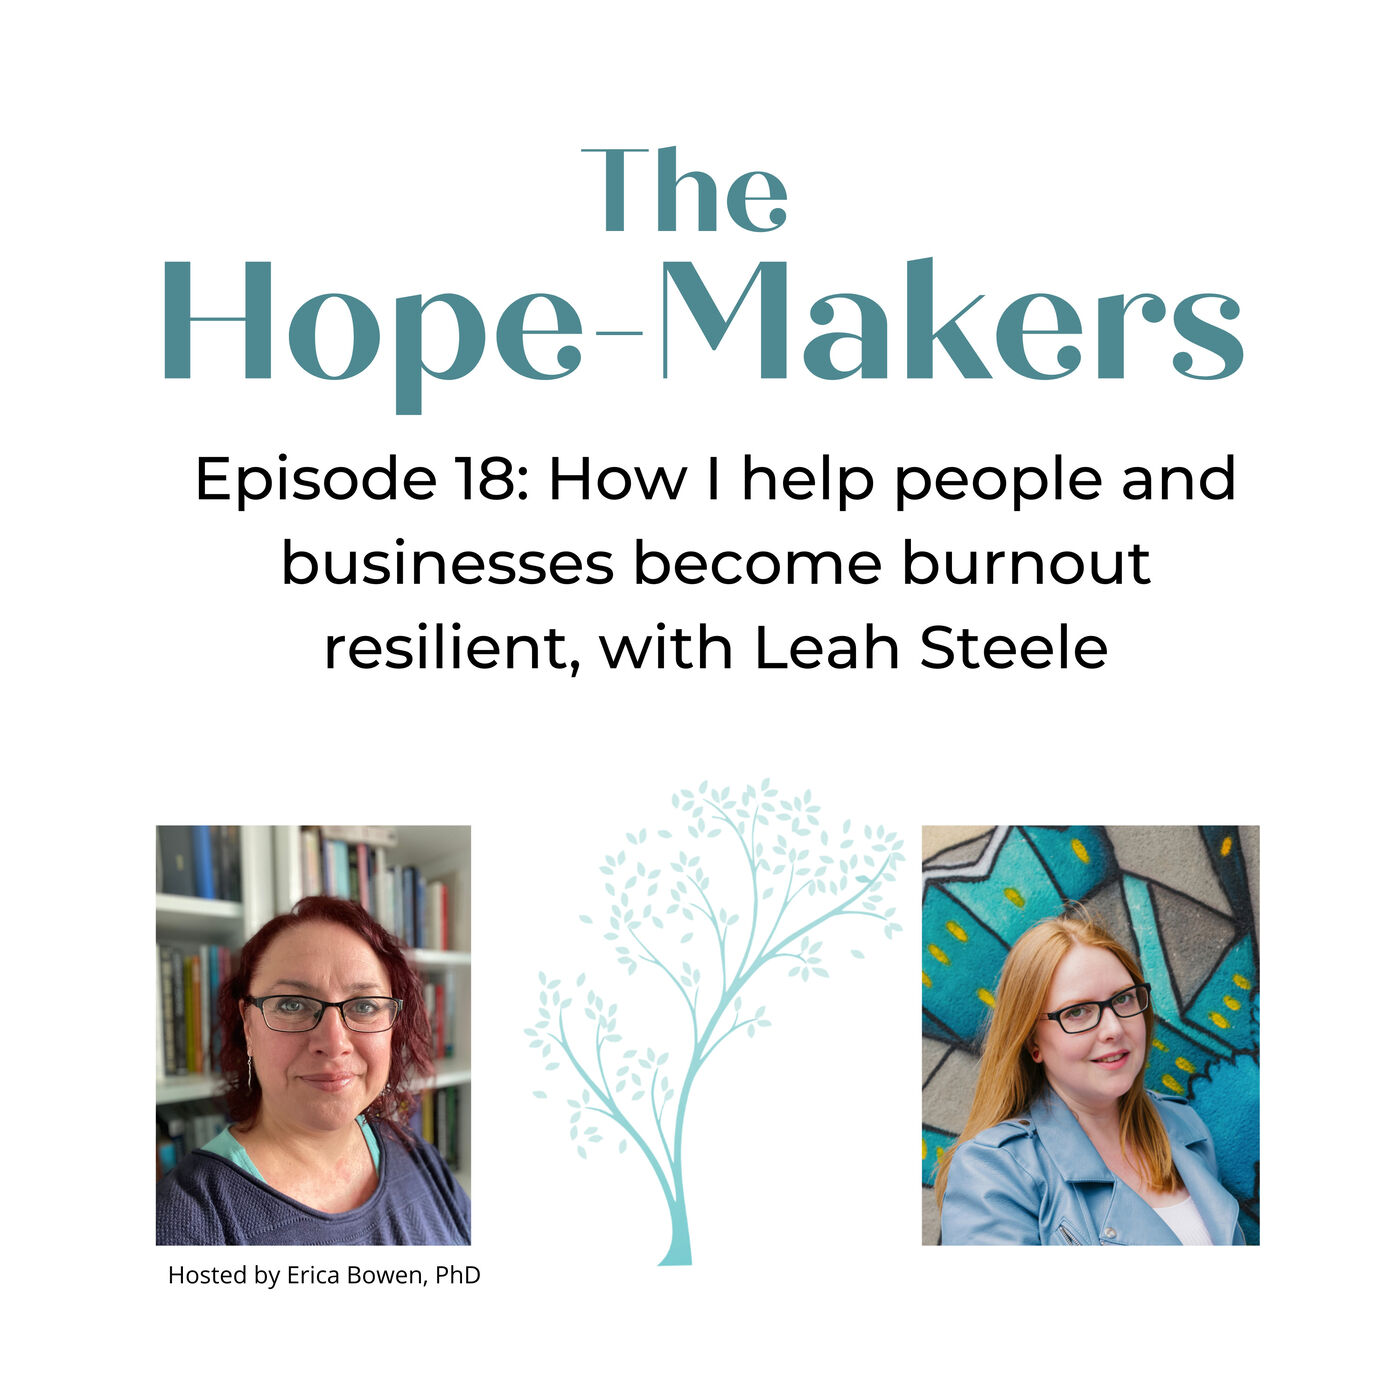 Episode 18. How I help people and businesses become burnout resilient, with Leah Steele